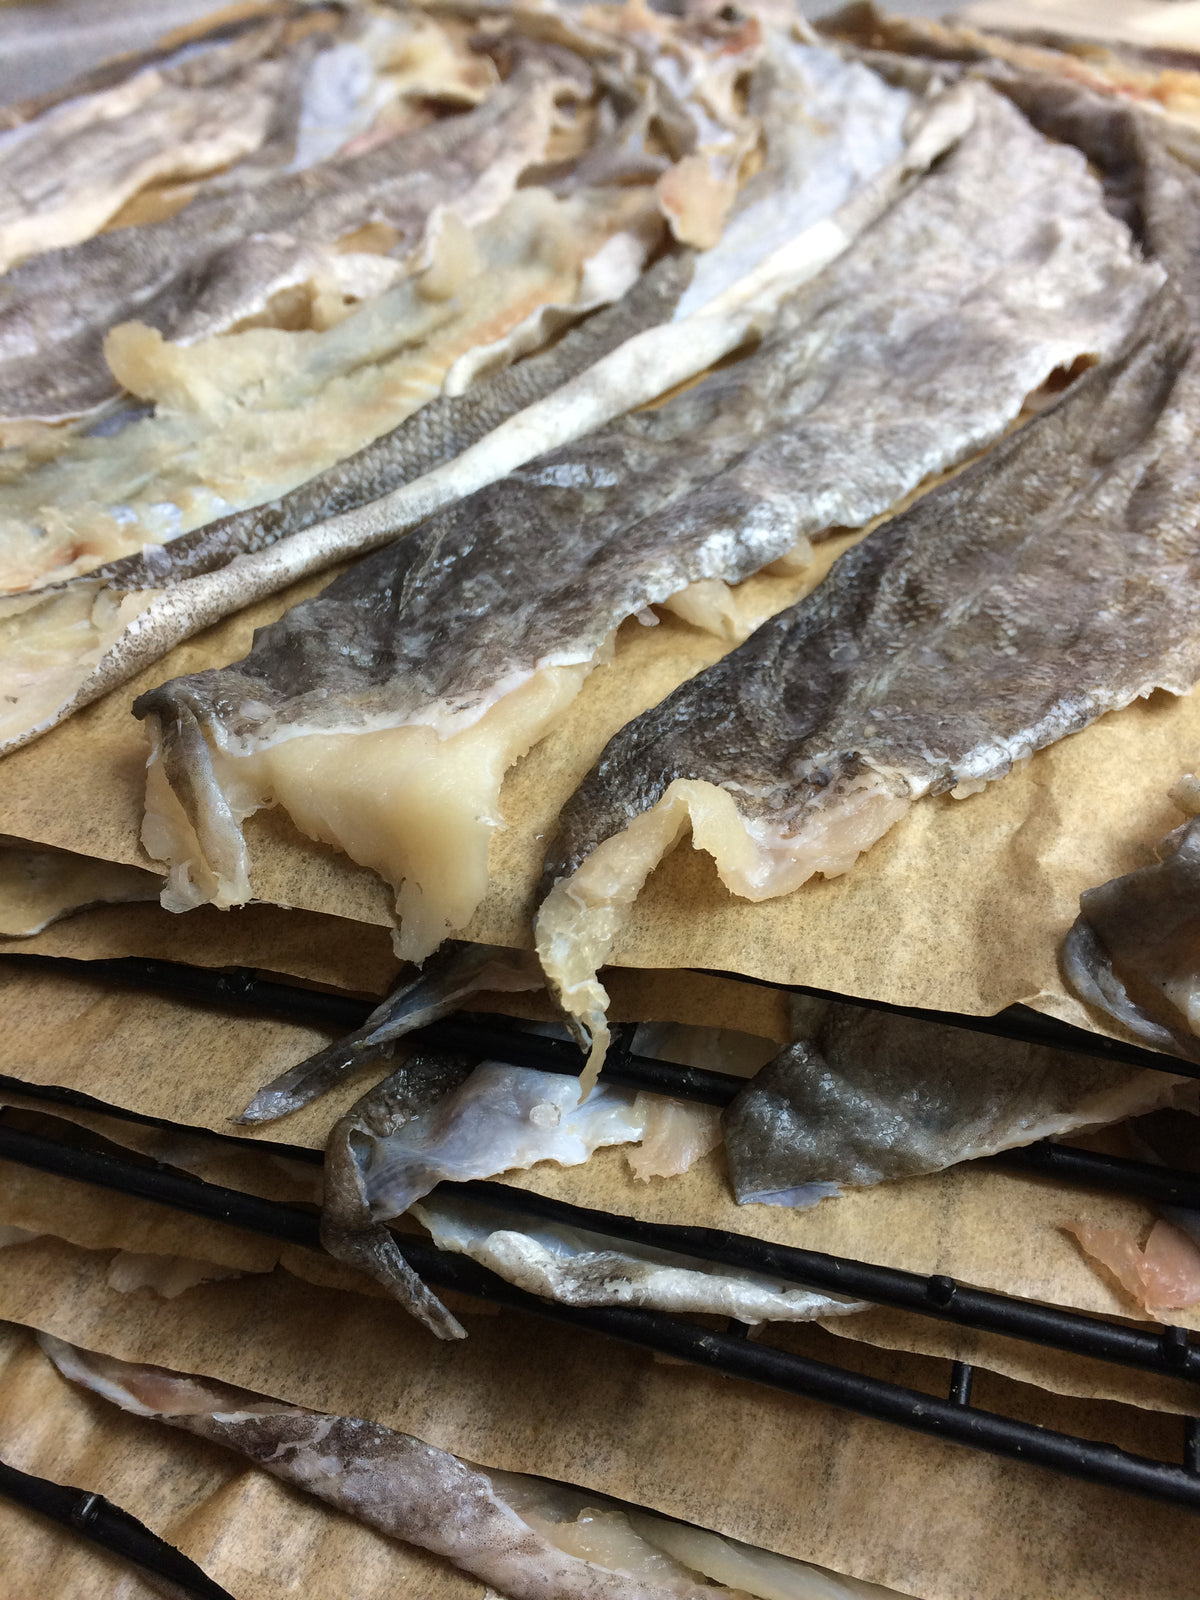 Fresh wild Alaska cod skins ready for drying.